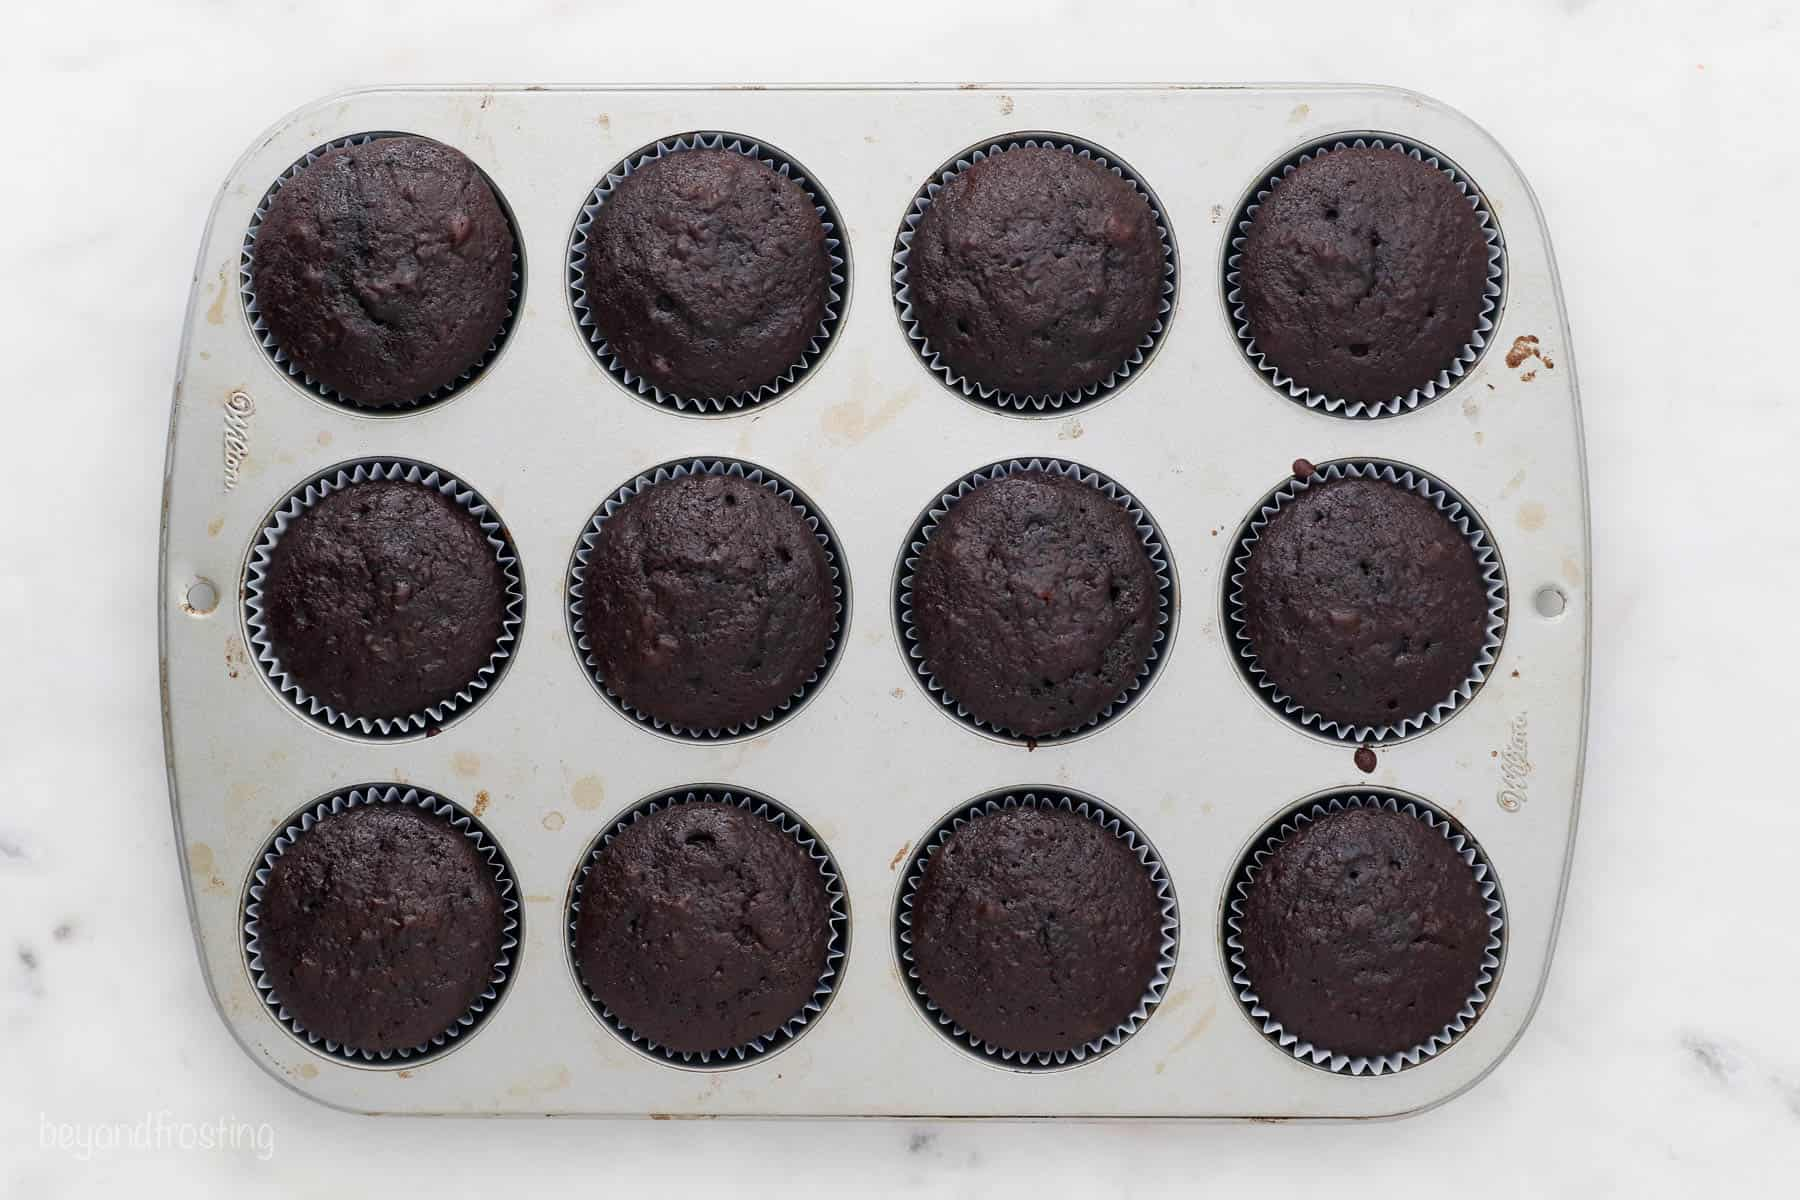 overhead of cupcake pan with baked chocolate cupcakes